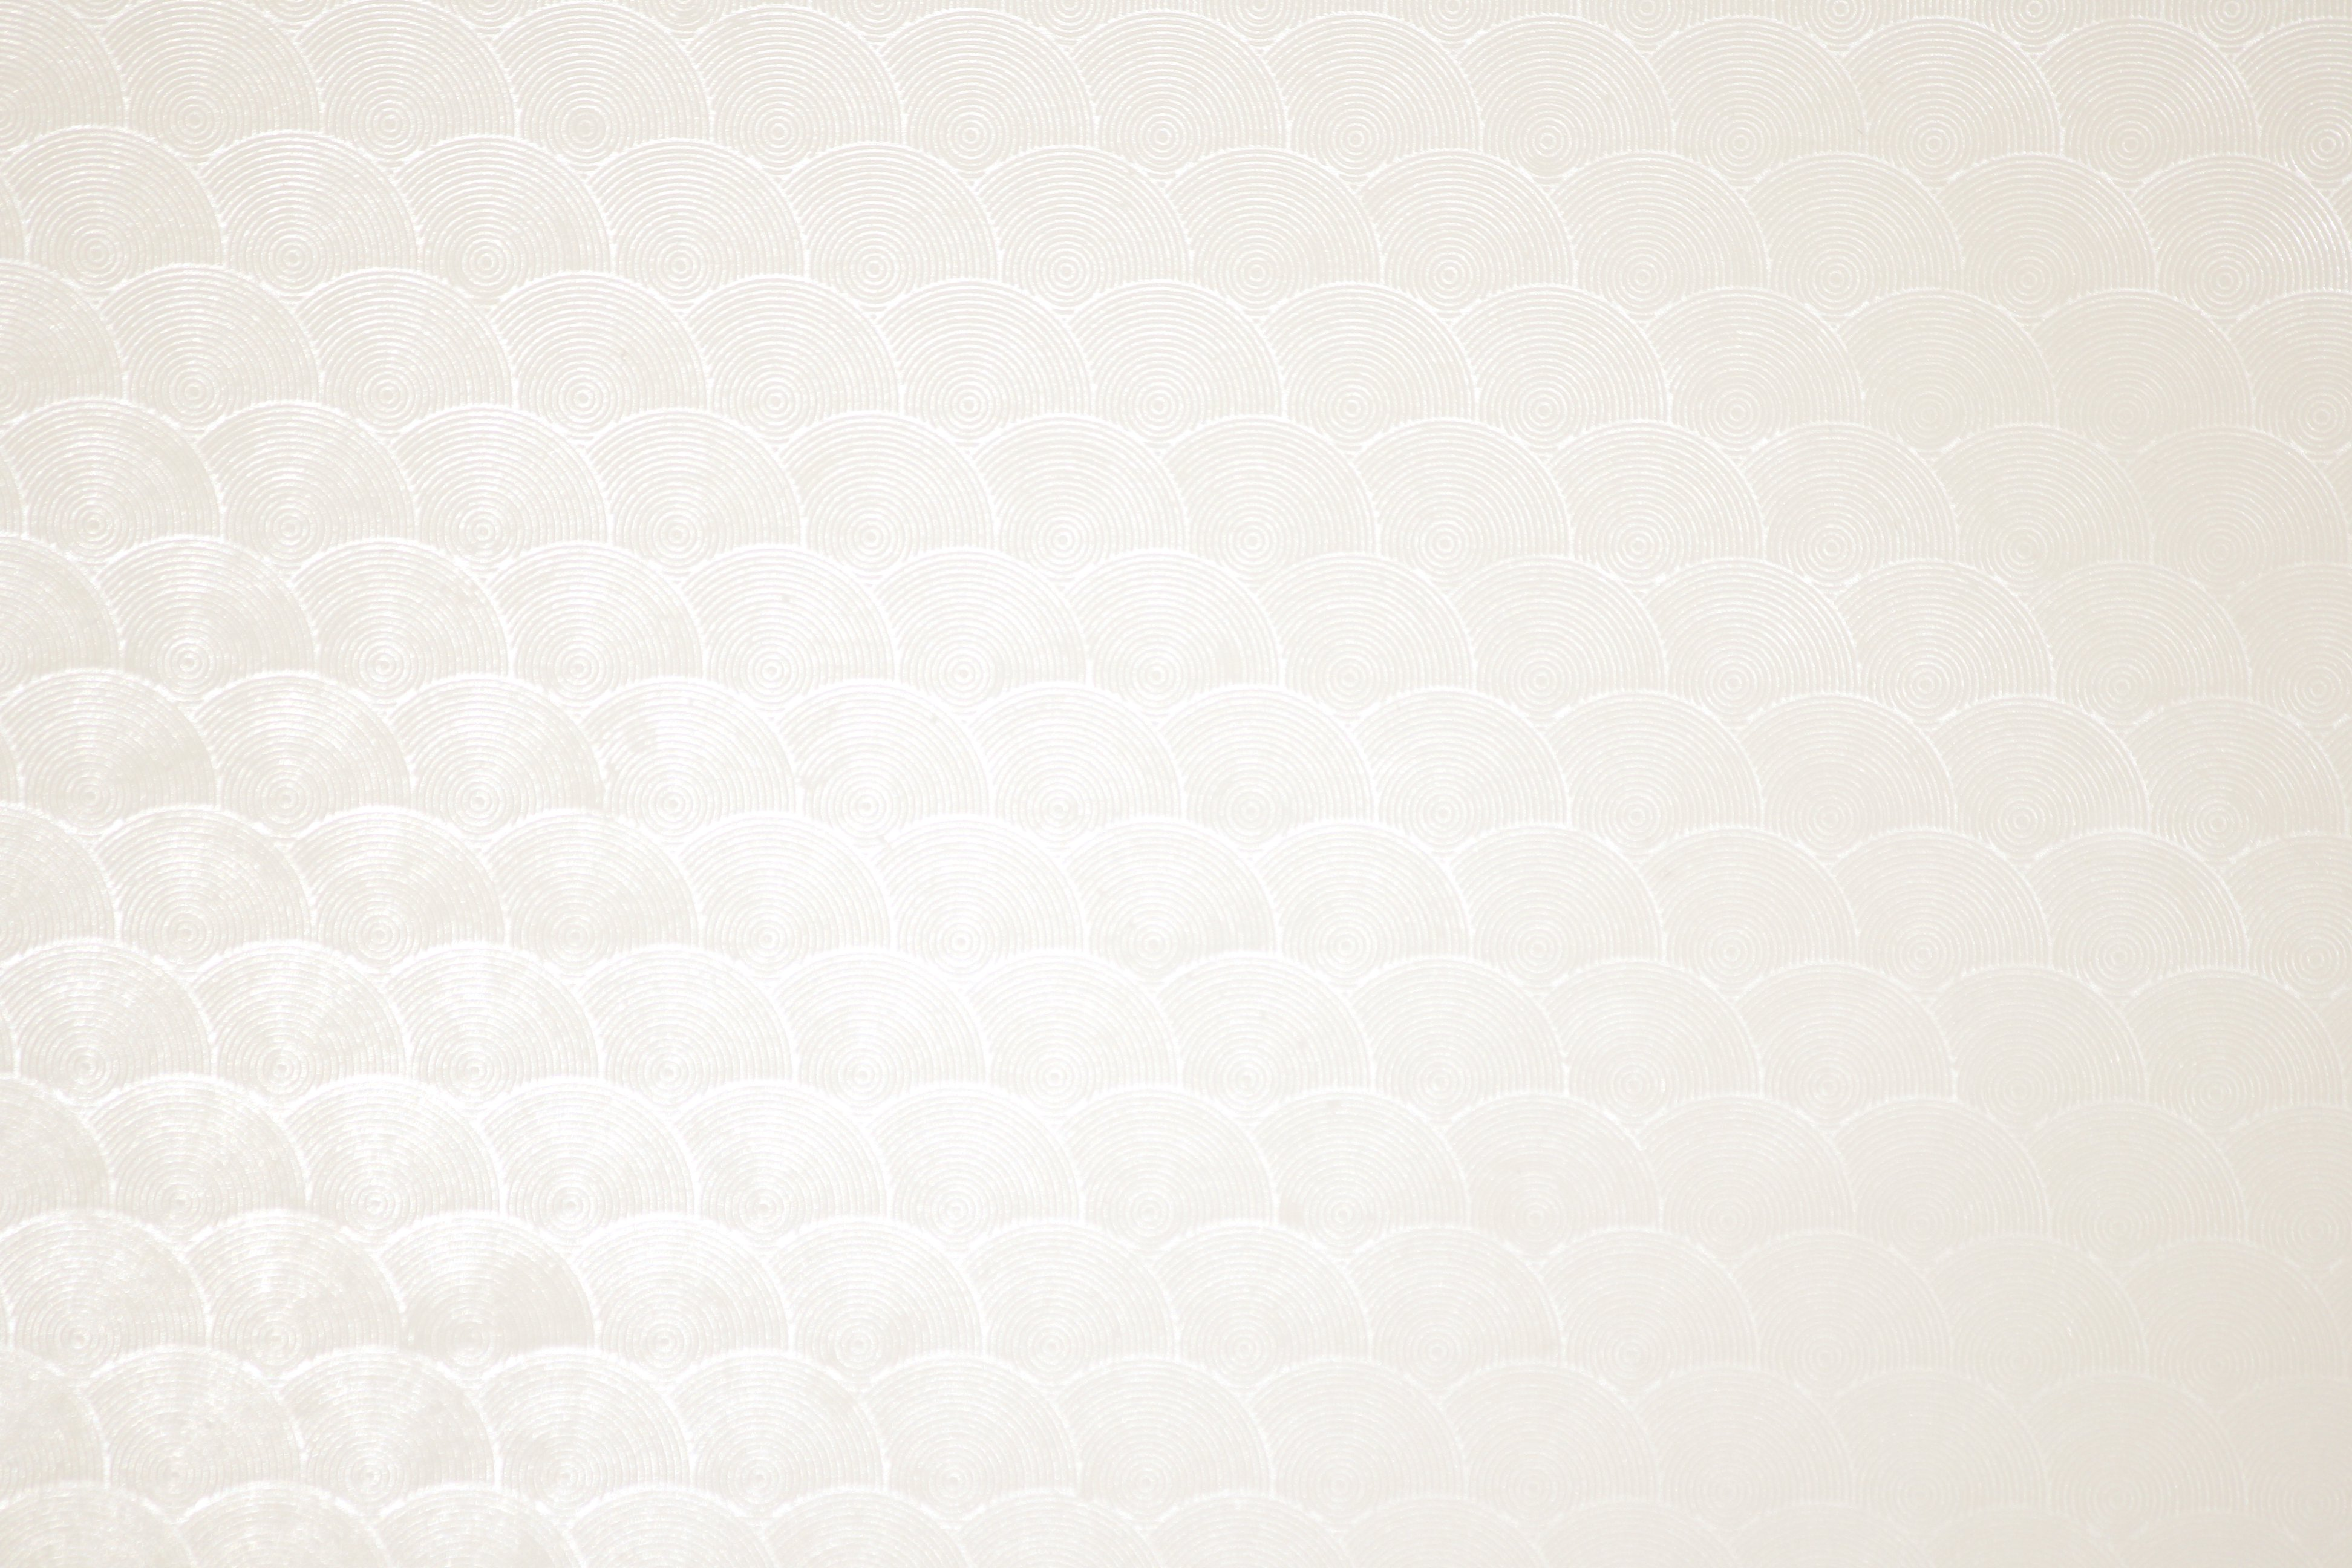 Ivory or Off White Circle Patterned Plastic Texture ...